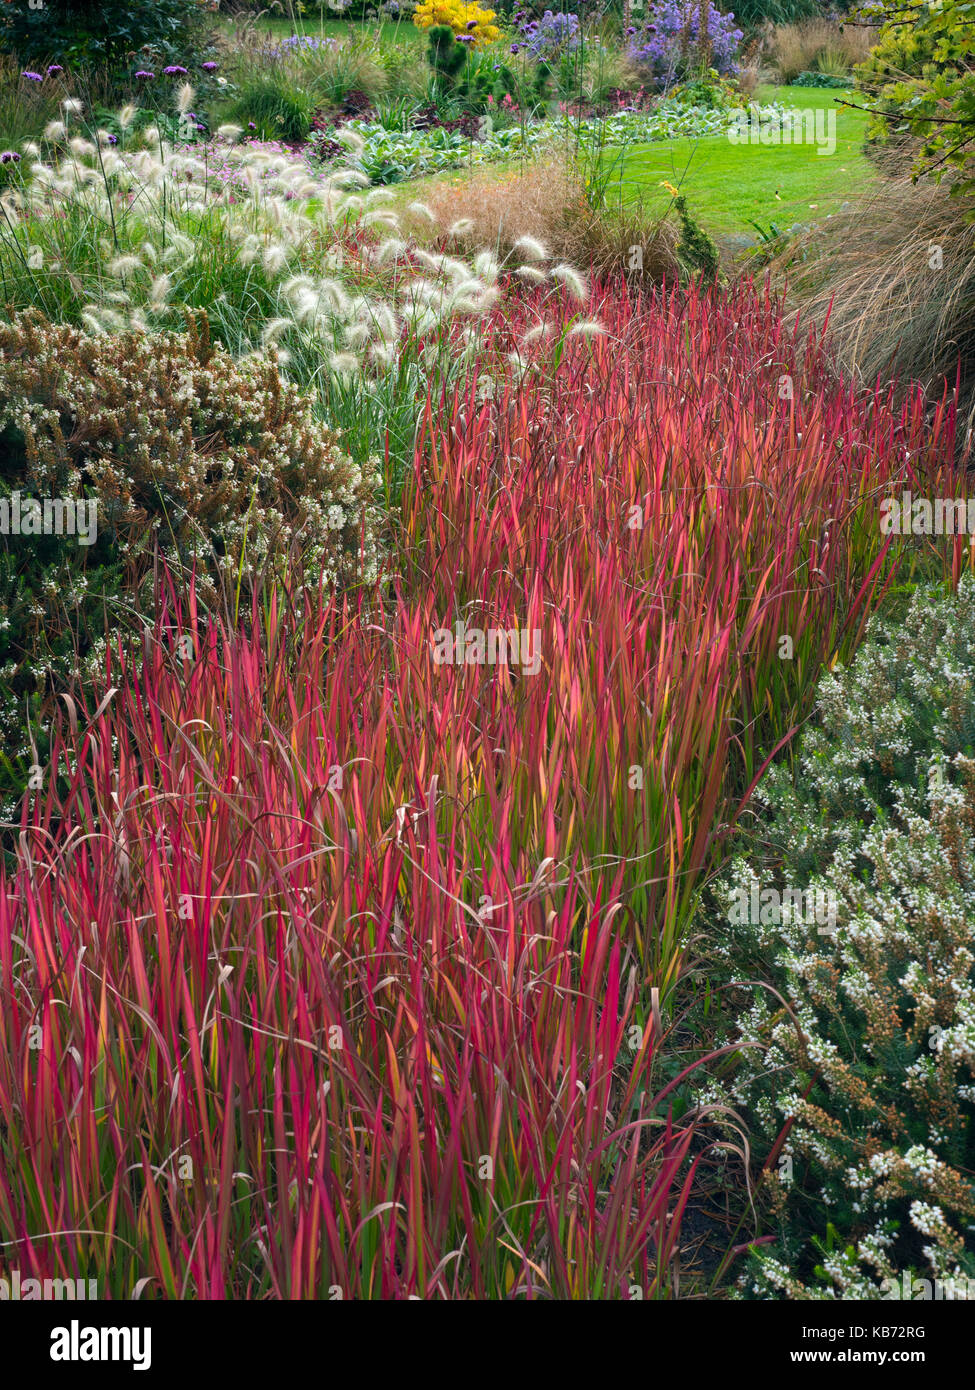 Imperata cylindrica 'Rubra' or Japanese blood grass in garden border - Stock Image